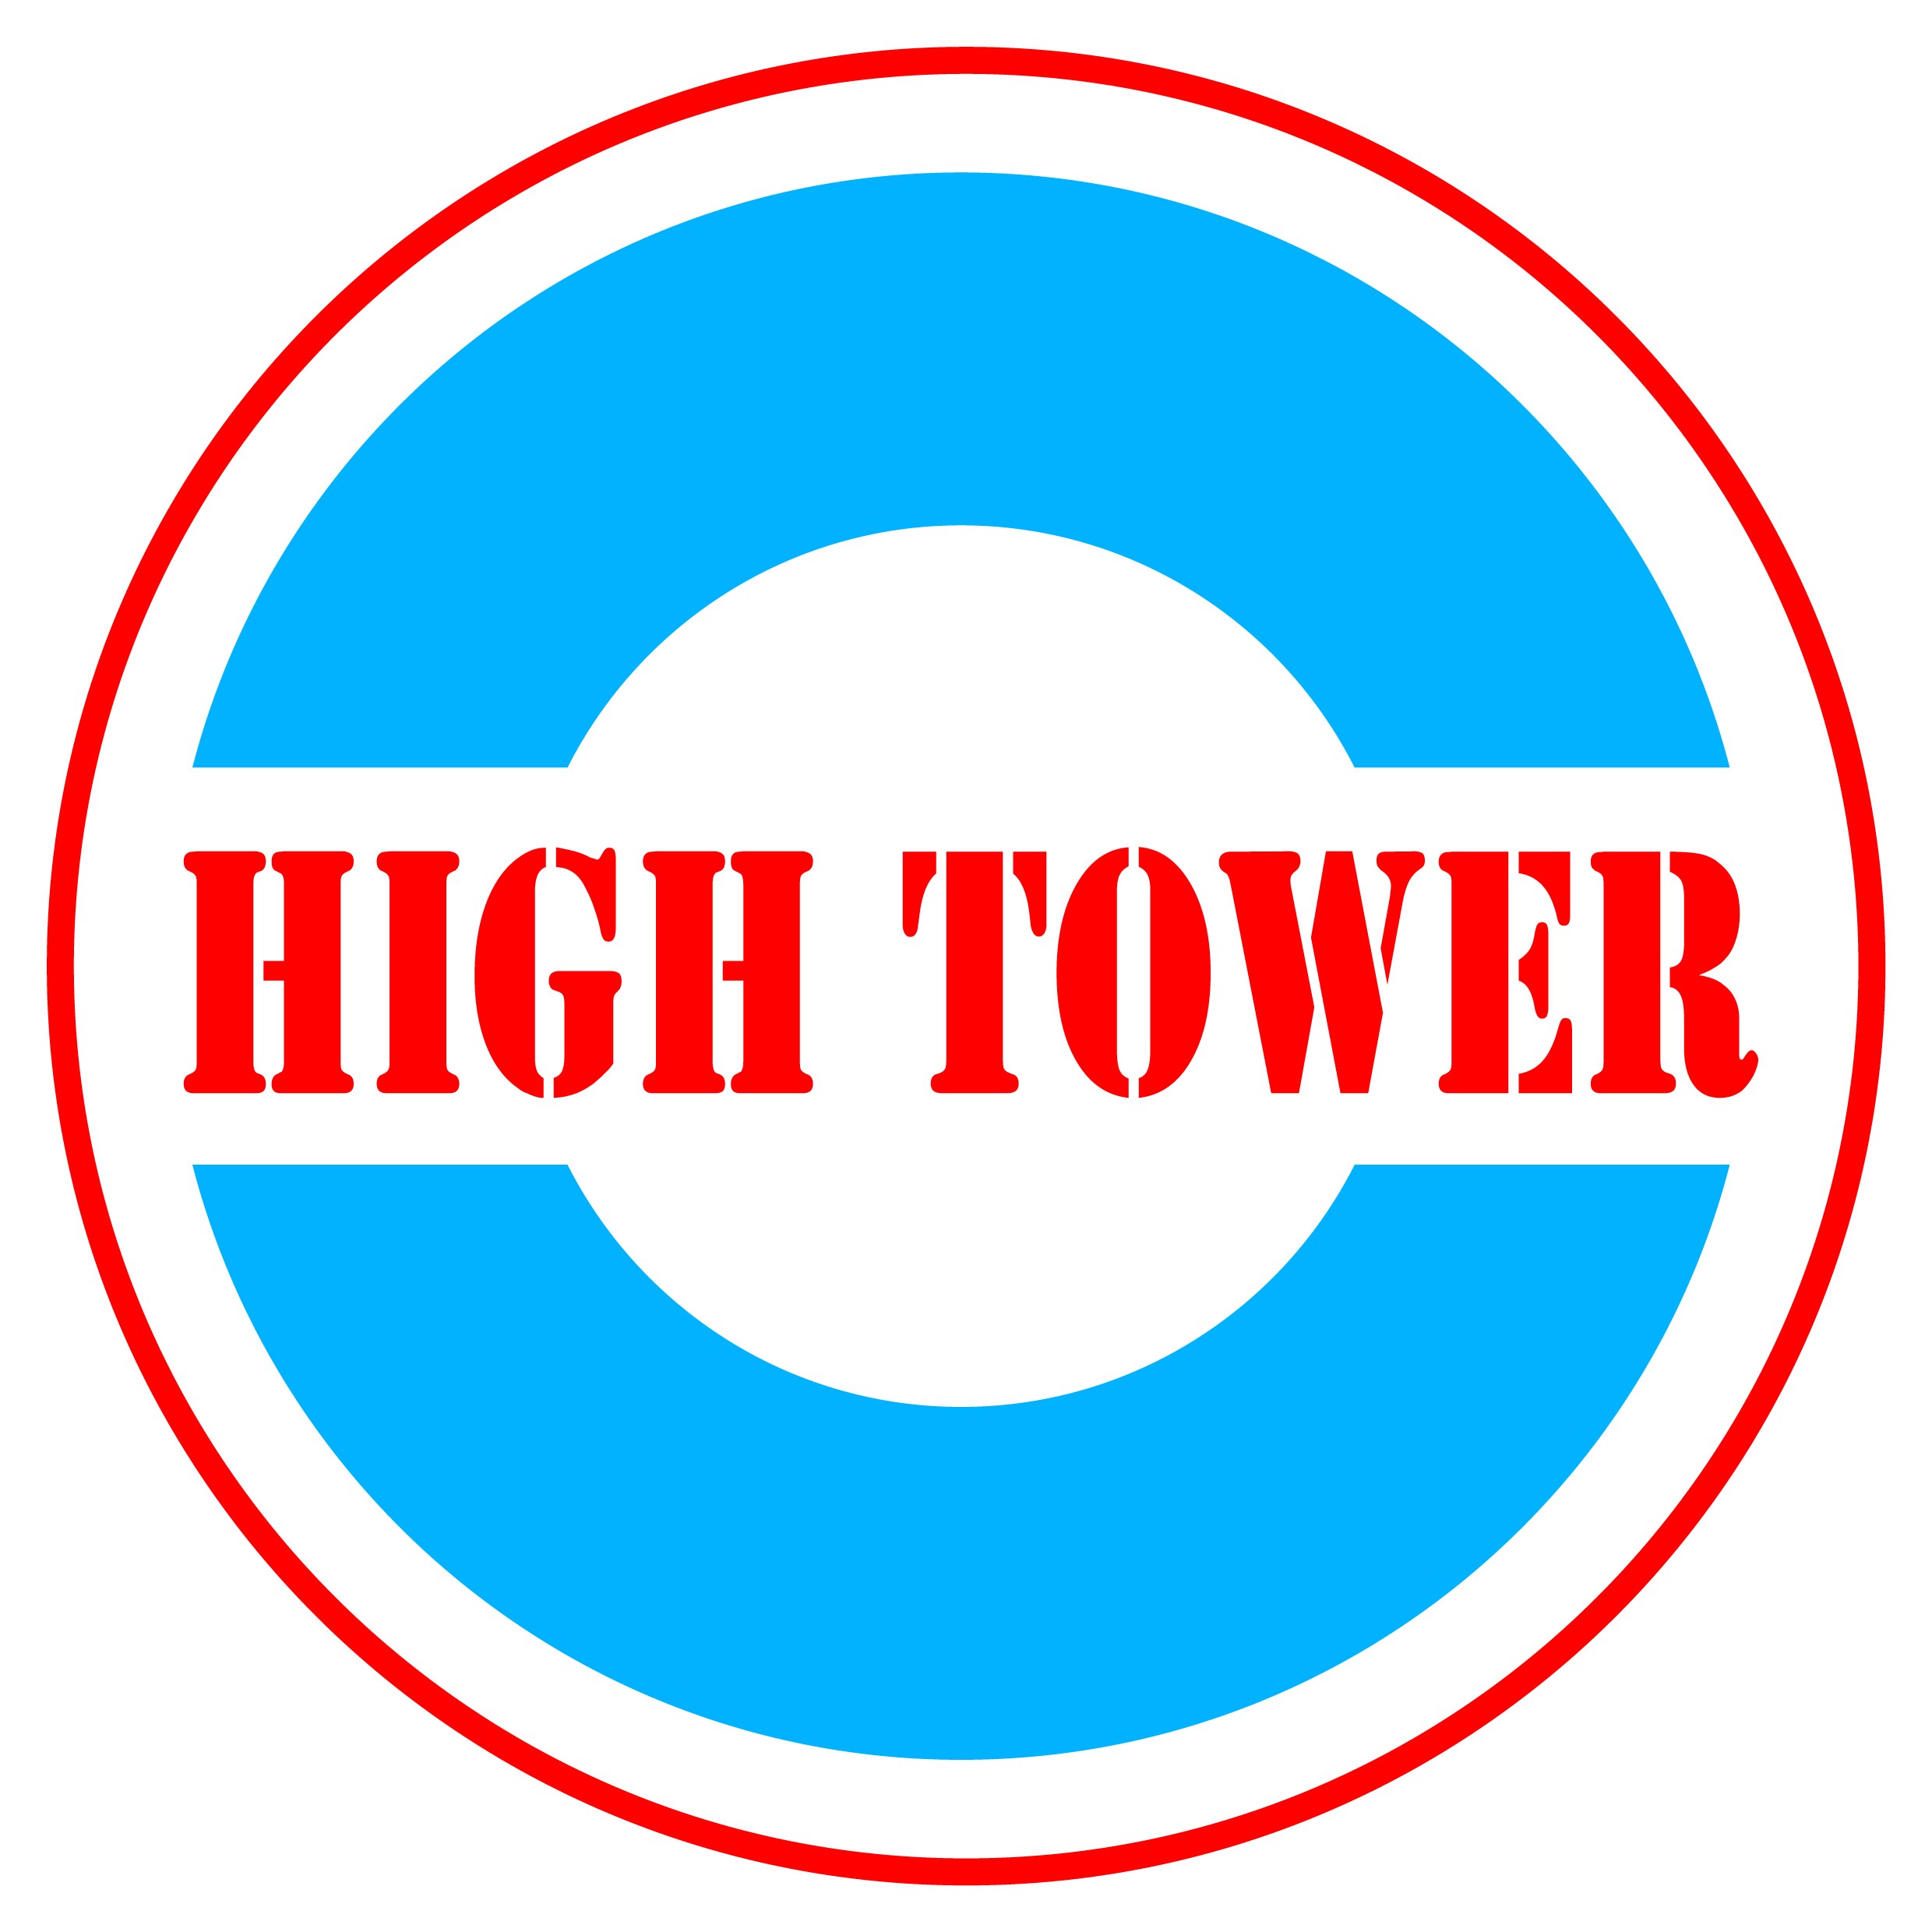 HIGH TOWER BUILDING CONTRACTING LLC